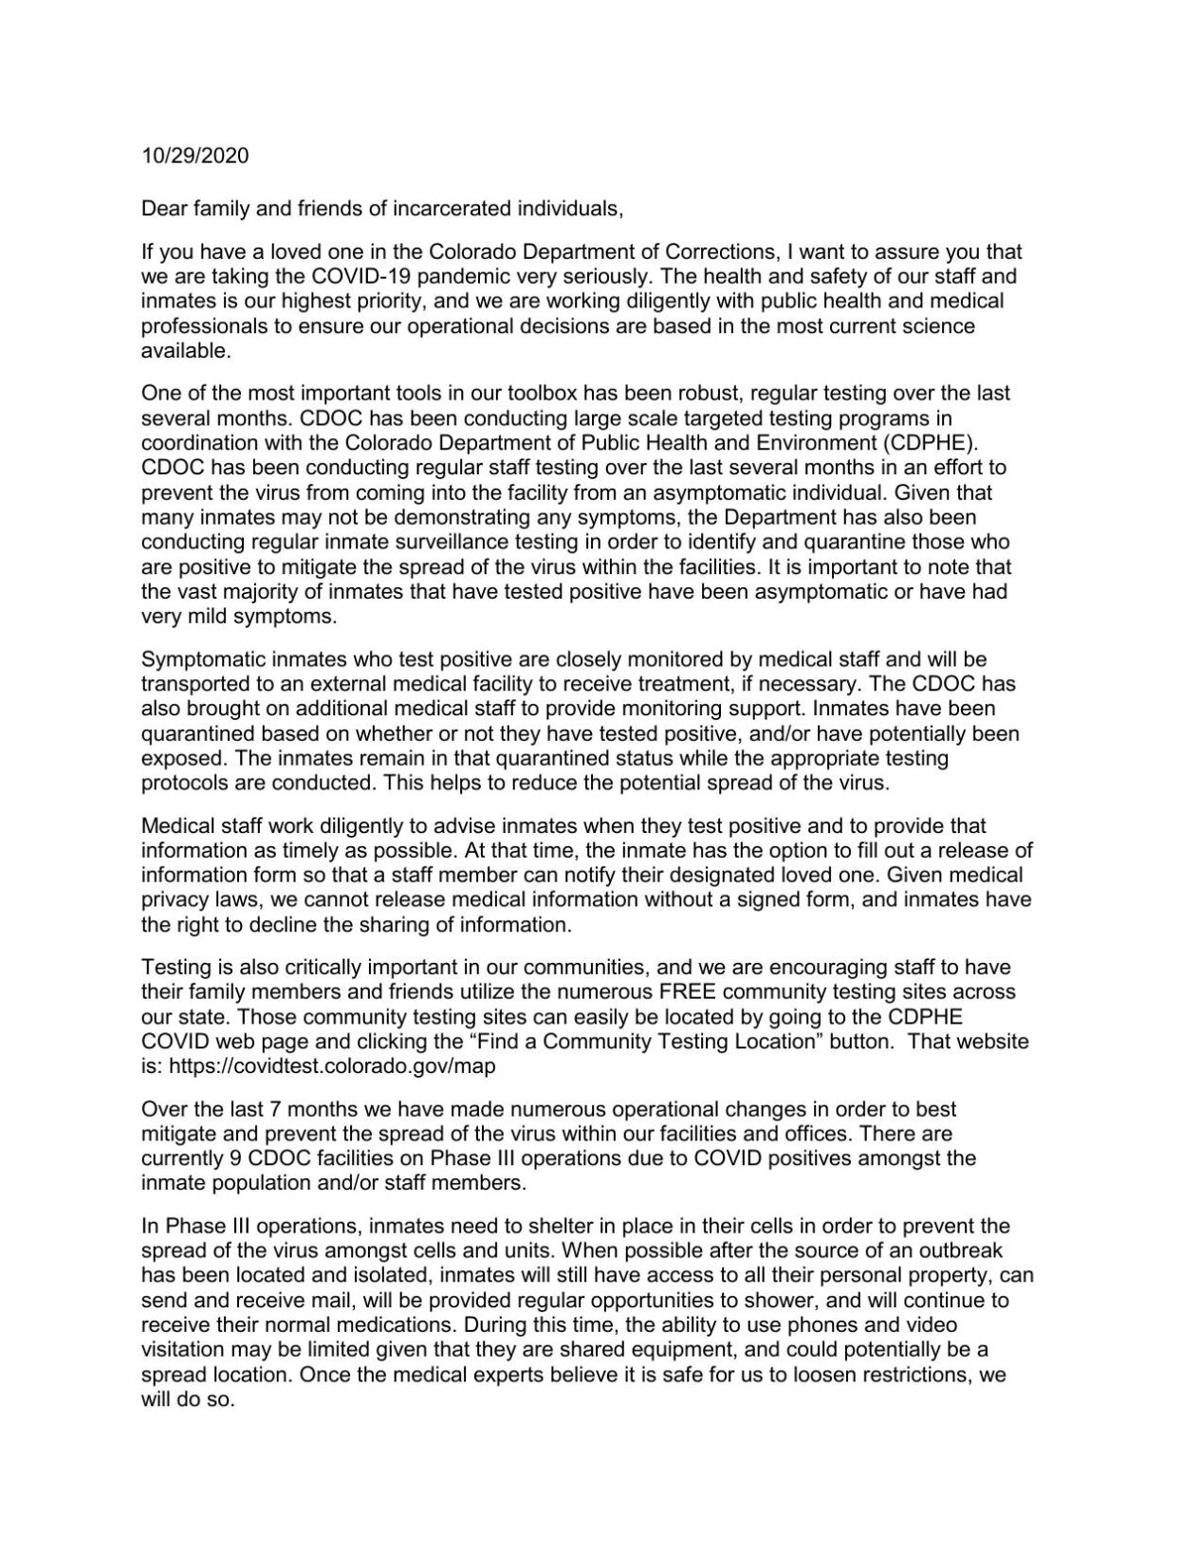 10-29-2020 Message to Inmate Family and Friends.pdf